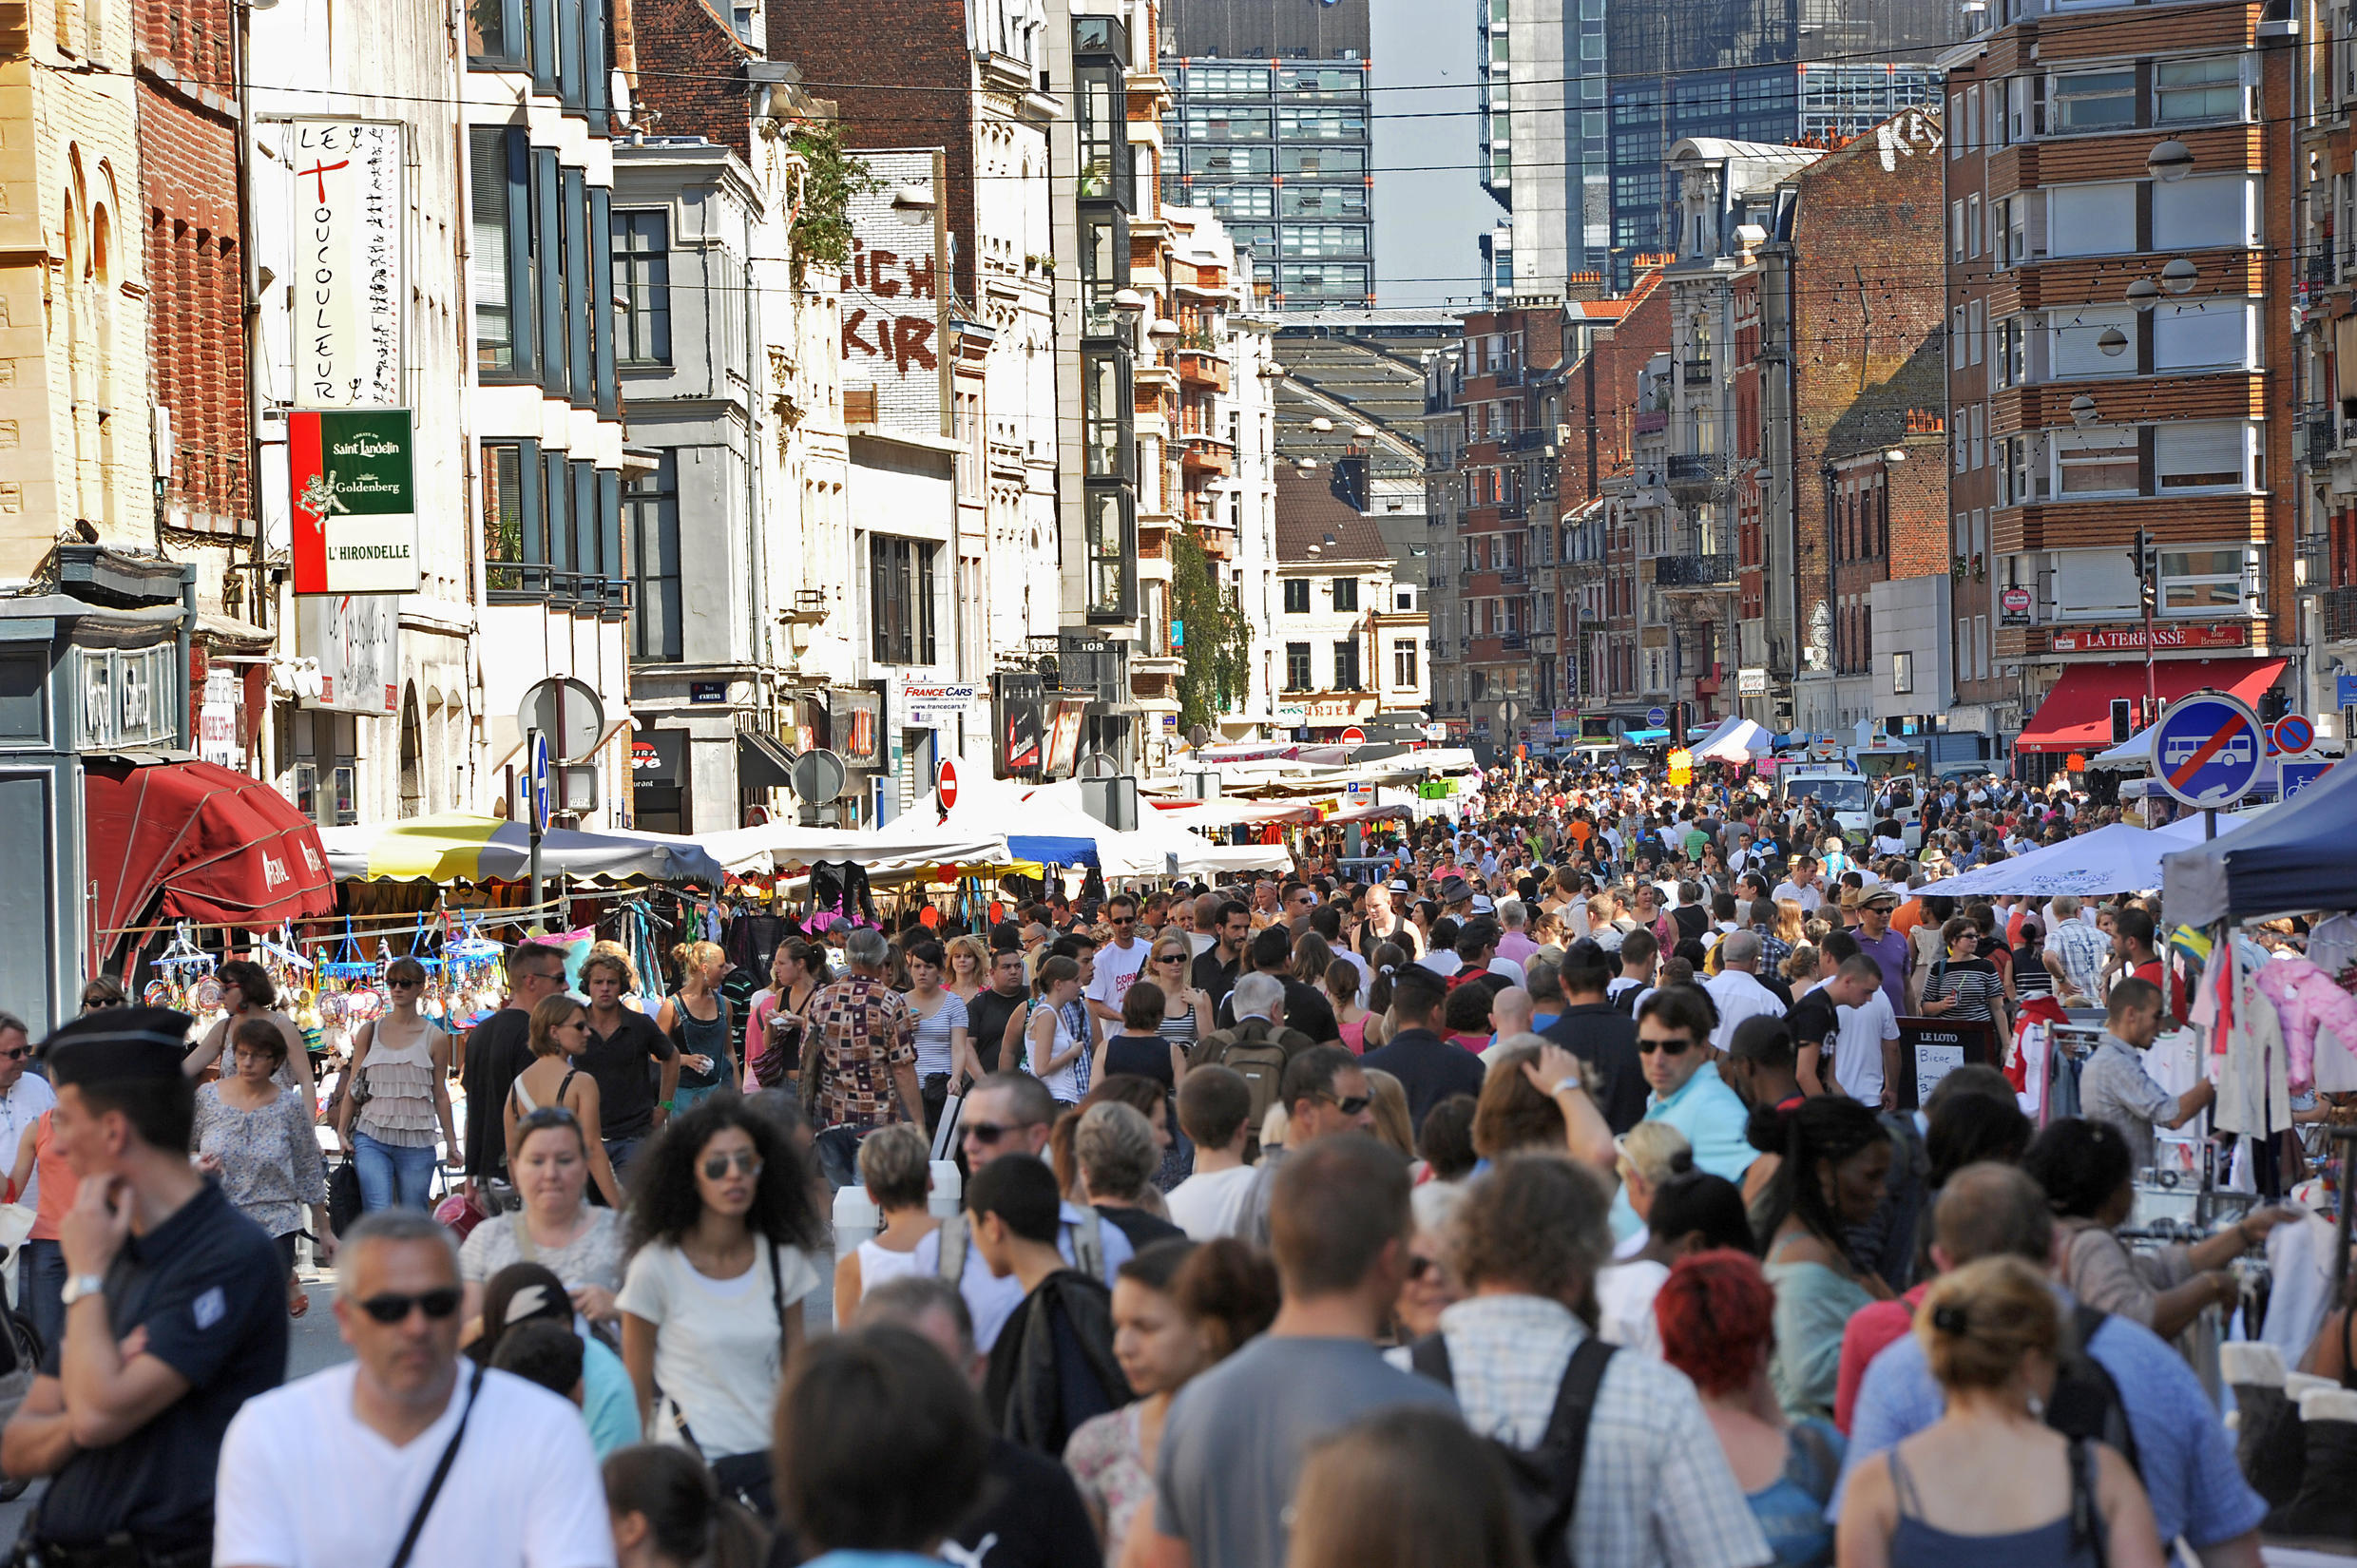 This file photo taken on September 03, 2011 shows visitors attending the annual Braderie de Lille (Lille Fleamarket) in Lille, northern France.